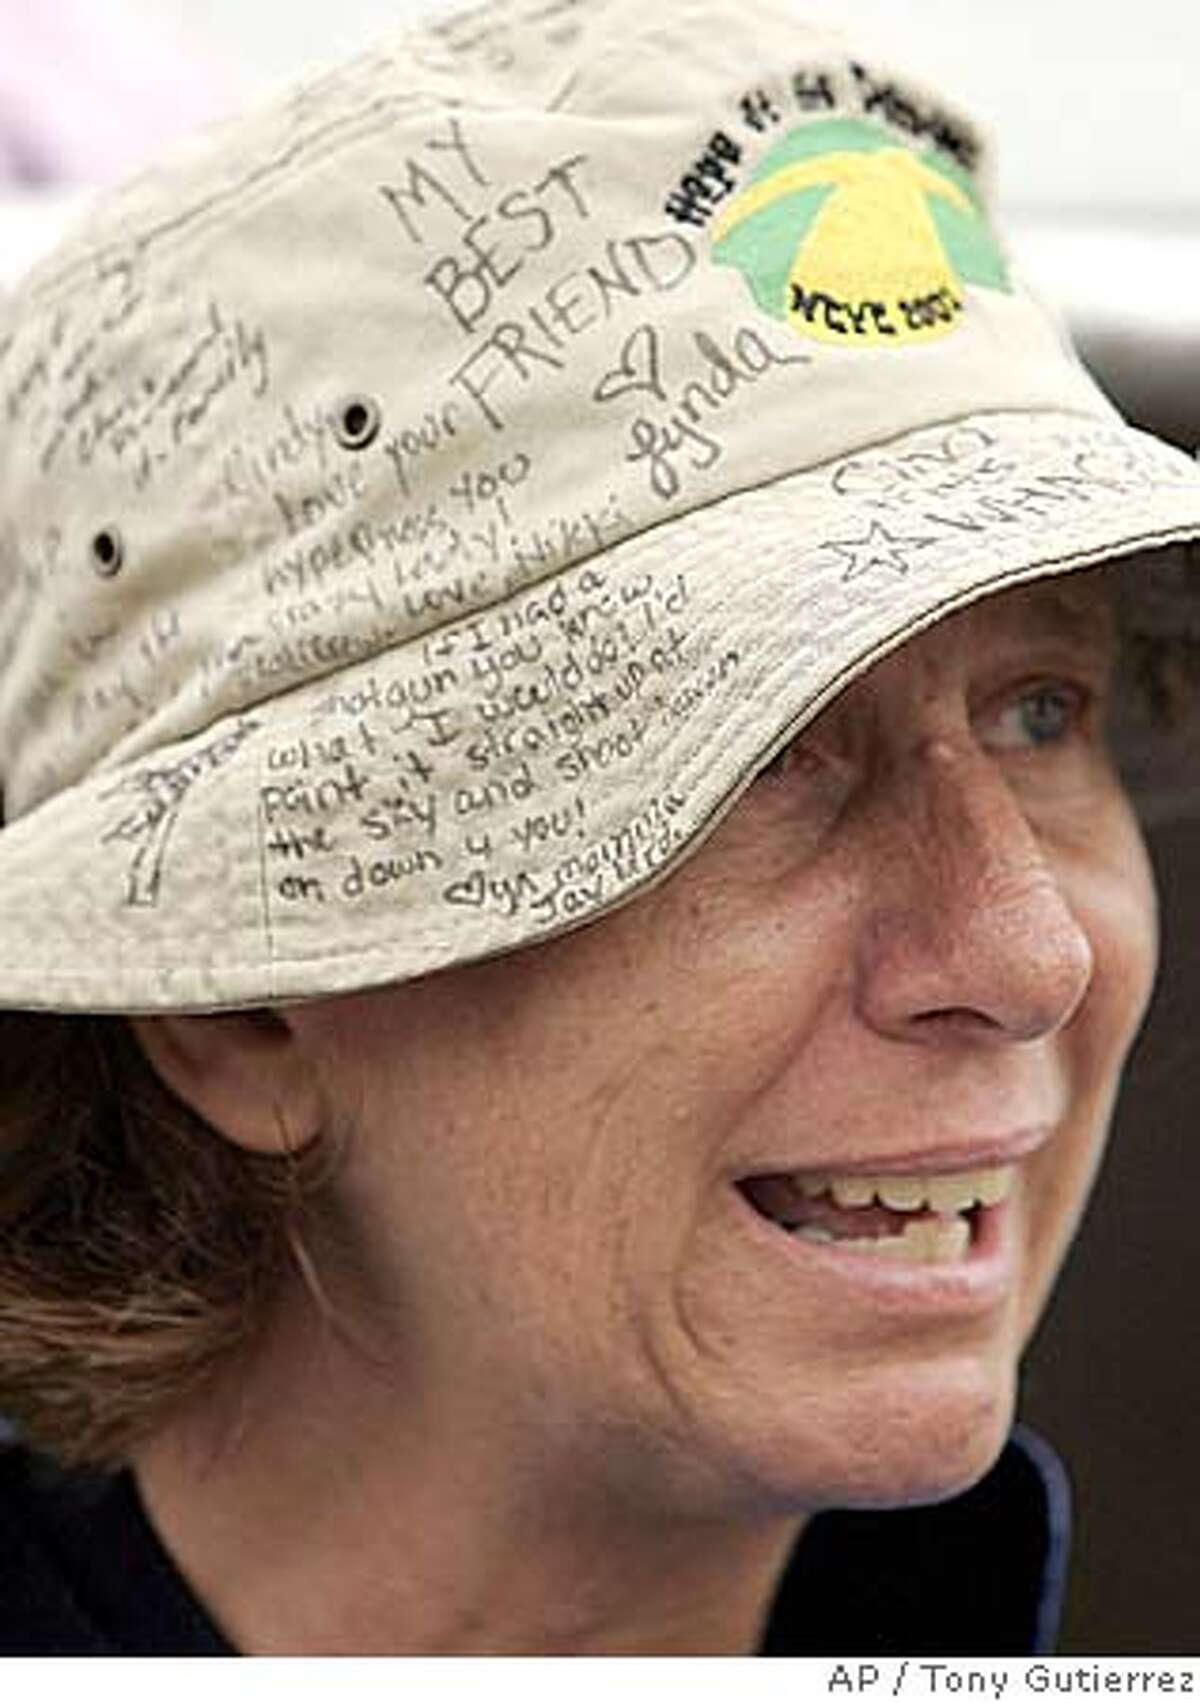 Cindy Sheehan of Vacaville, Calif., wears a hat with messages of support from friends as she chats with a reporter on the country road that leads to President Bush's ranch near Crawford, Texas, Wednesday, Aug. 10. 2005. (AP Photo/Tony Gutierrez)